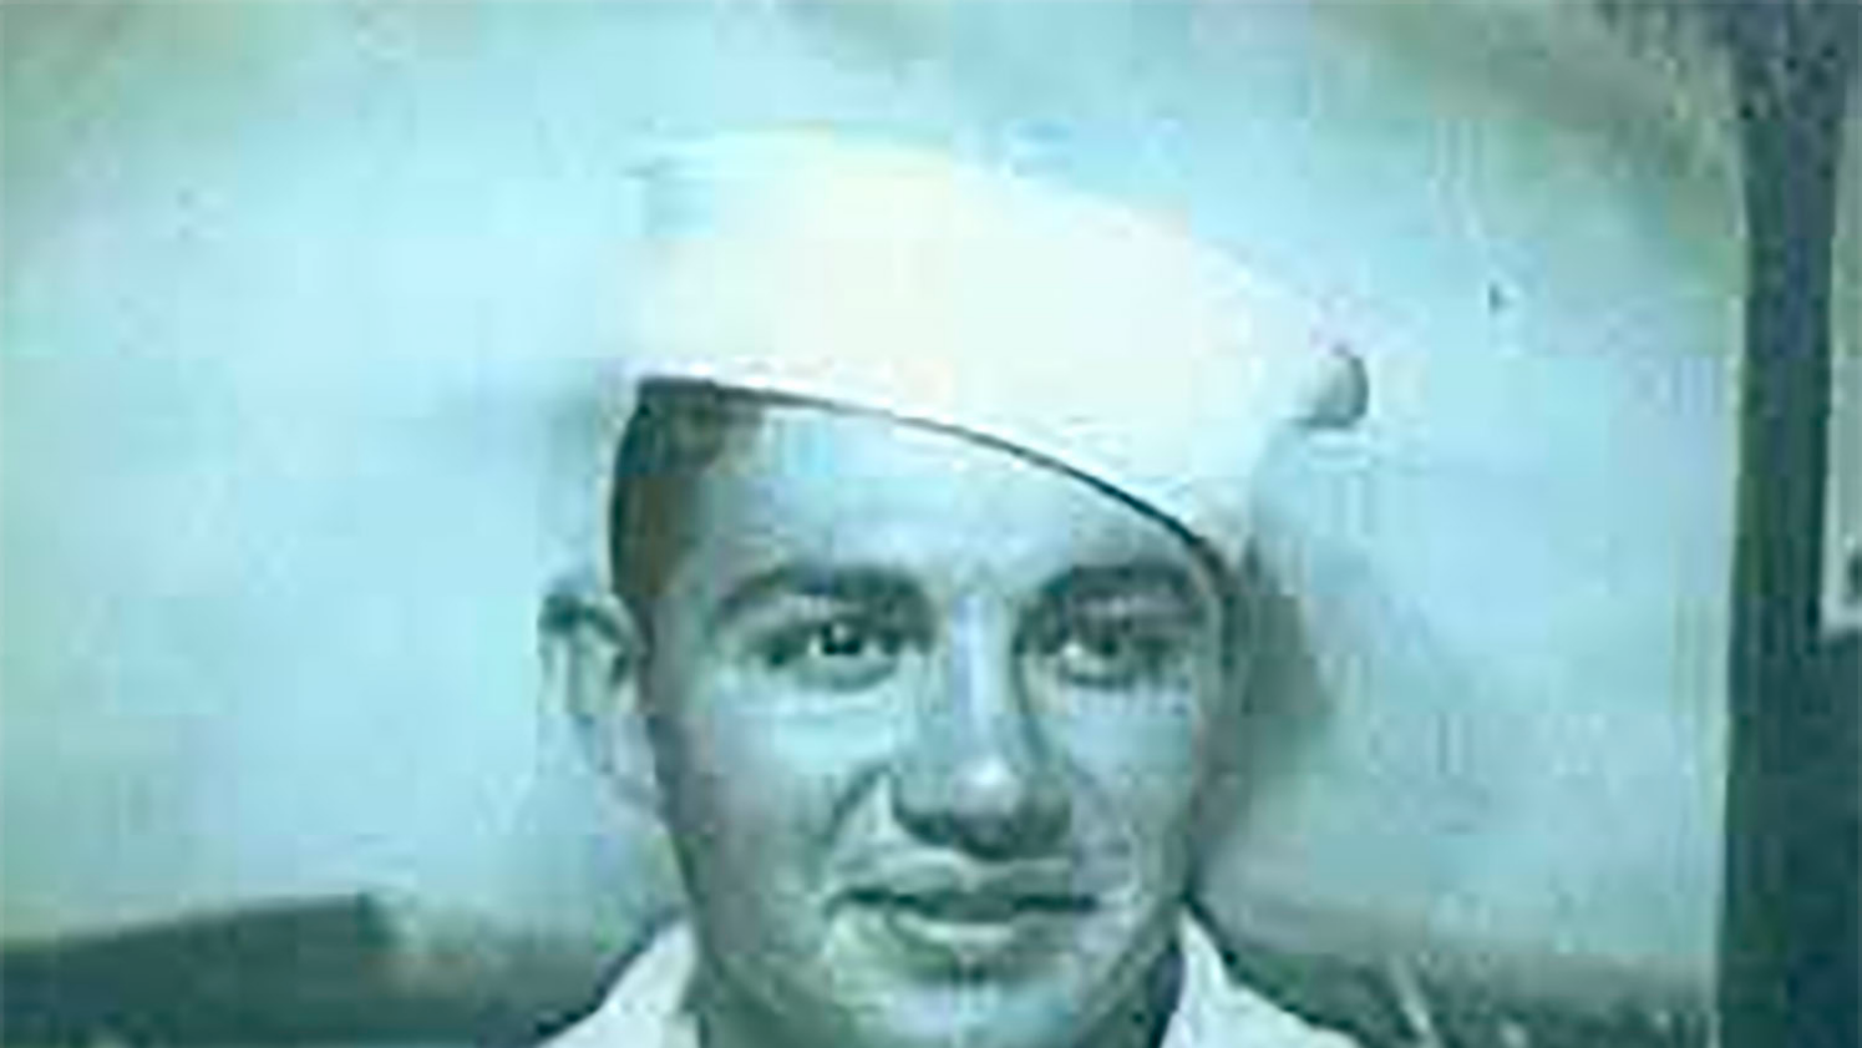 This photo provided by the Defense POW/MIA Accounting Agency shows Navy Seaman 2nd Class Charles C. Gomez, Jr., 19, of Slidell, Louisiana, killed during World War II, and was accounted for on Sept. 19, 2018. On Dec. 7, 1941, Gomez was assigned to the battleship USS Oklahoma, which was moored at Ford Island, Pearl Harbor, when the ship was attacked by Japanese aircraft. The USS Oklahoma sustained multiple torpedo hits, which caused it to quickly capsize. The attack on the ship resulted in the deaths of 429 crewmen, including Gomez. (Defense POW/MIA Accounting Agency  via AP)